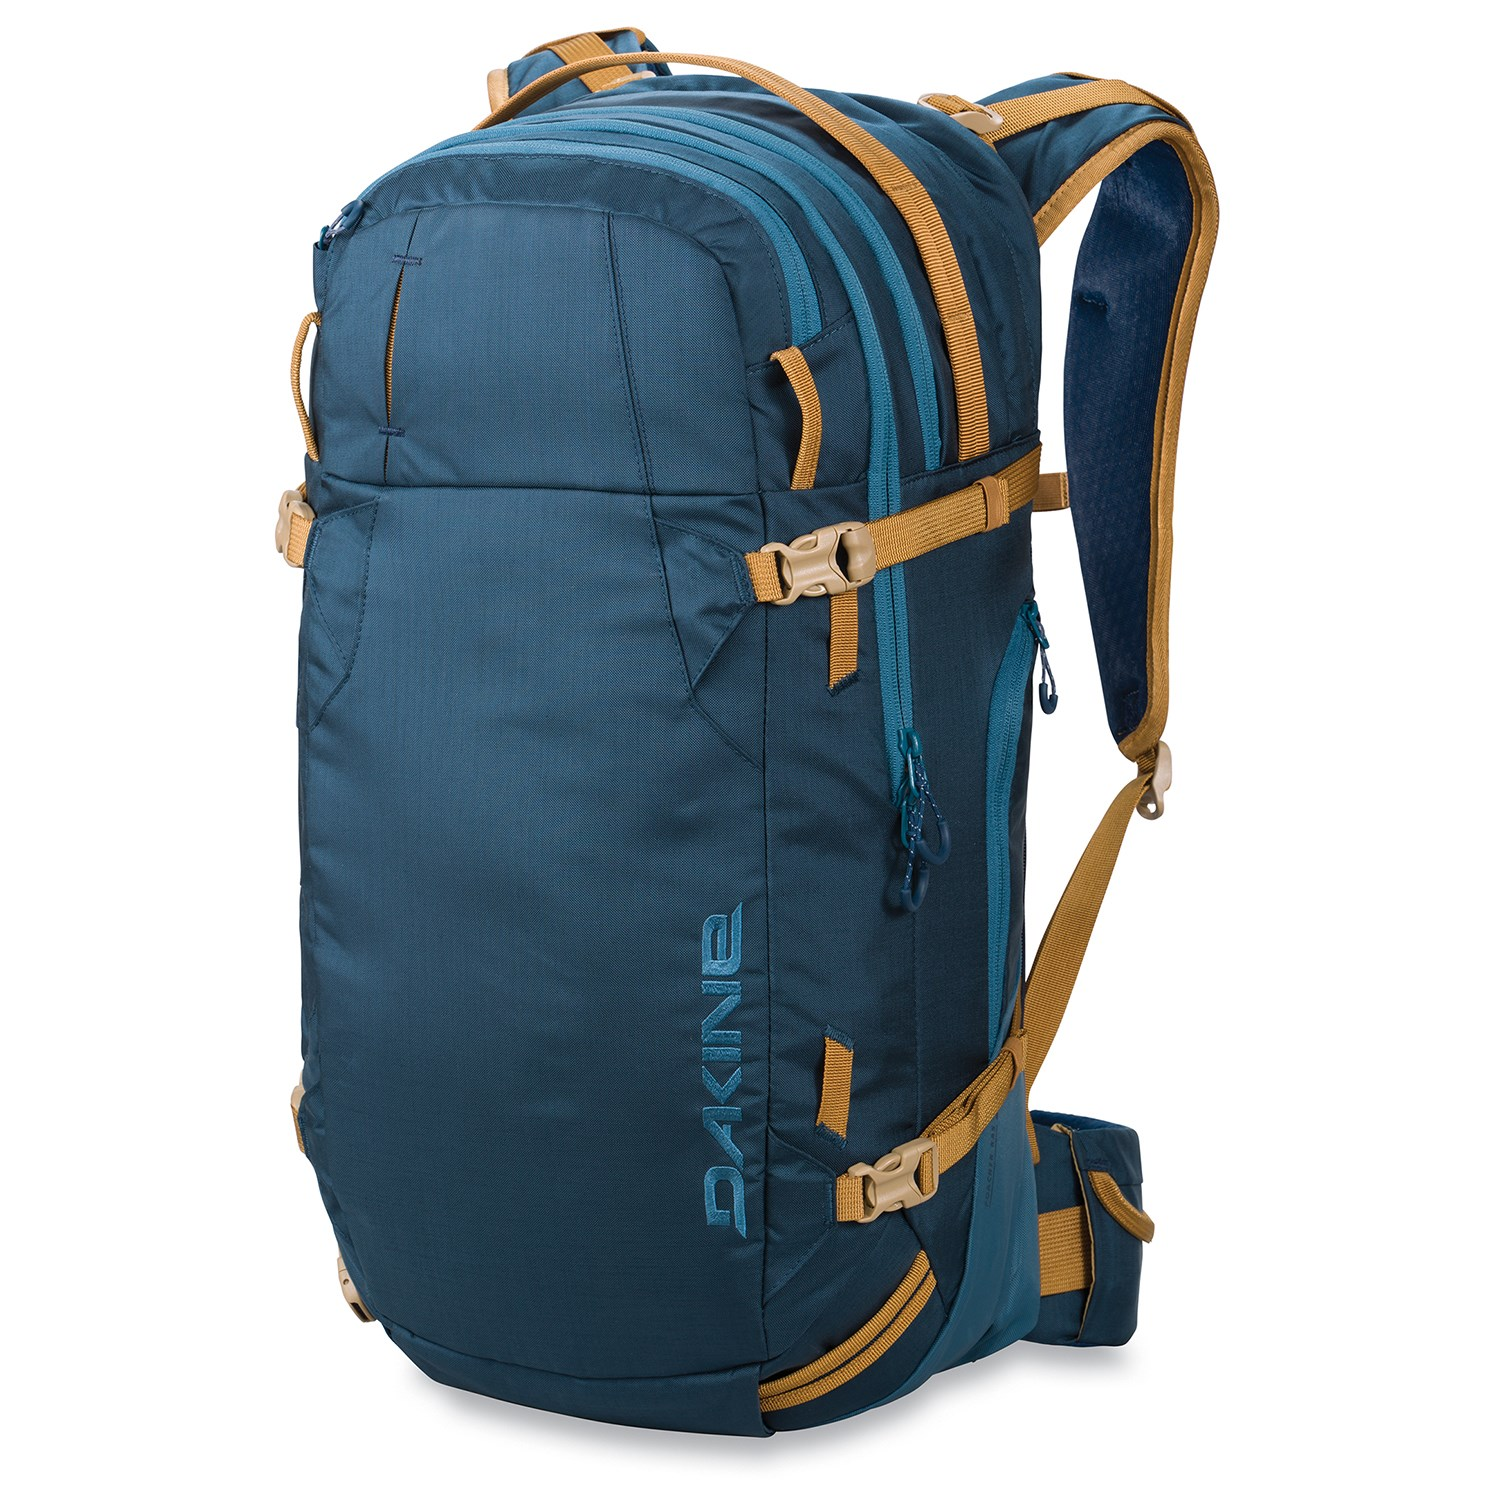 Dakine Poacher RAS 36L Backpack | evo